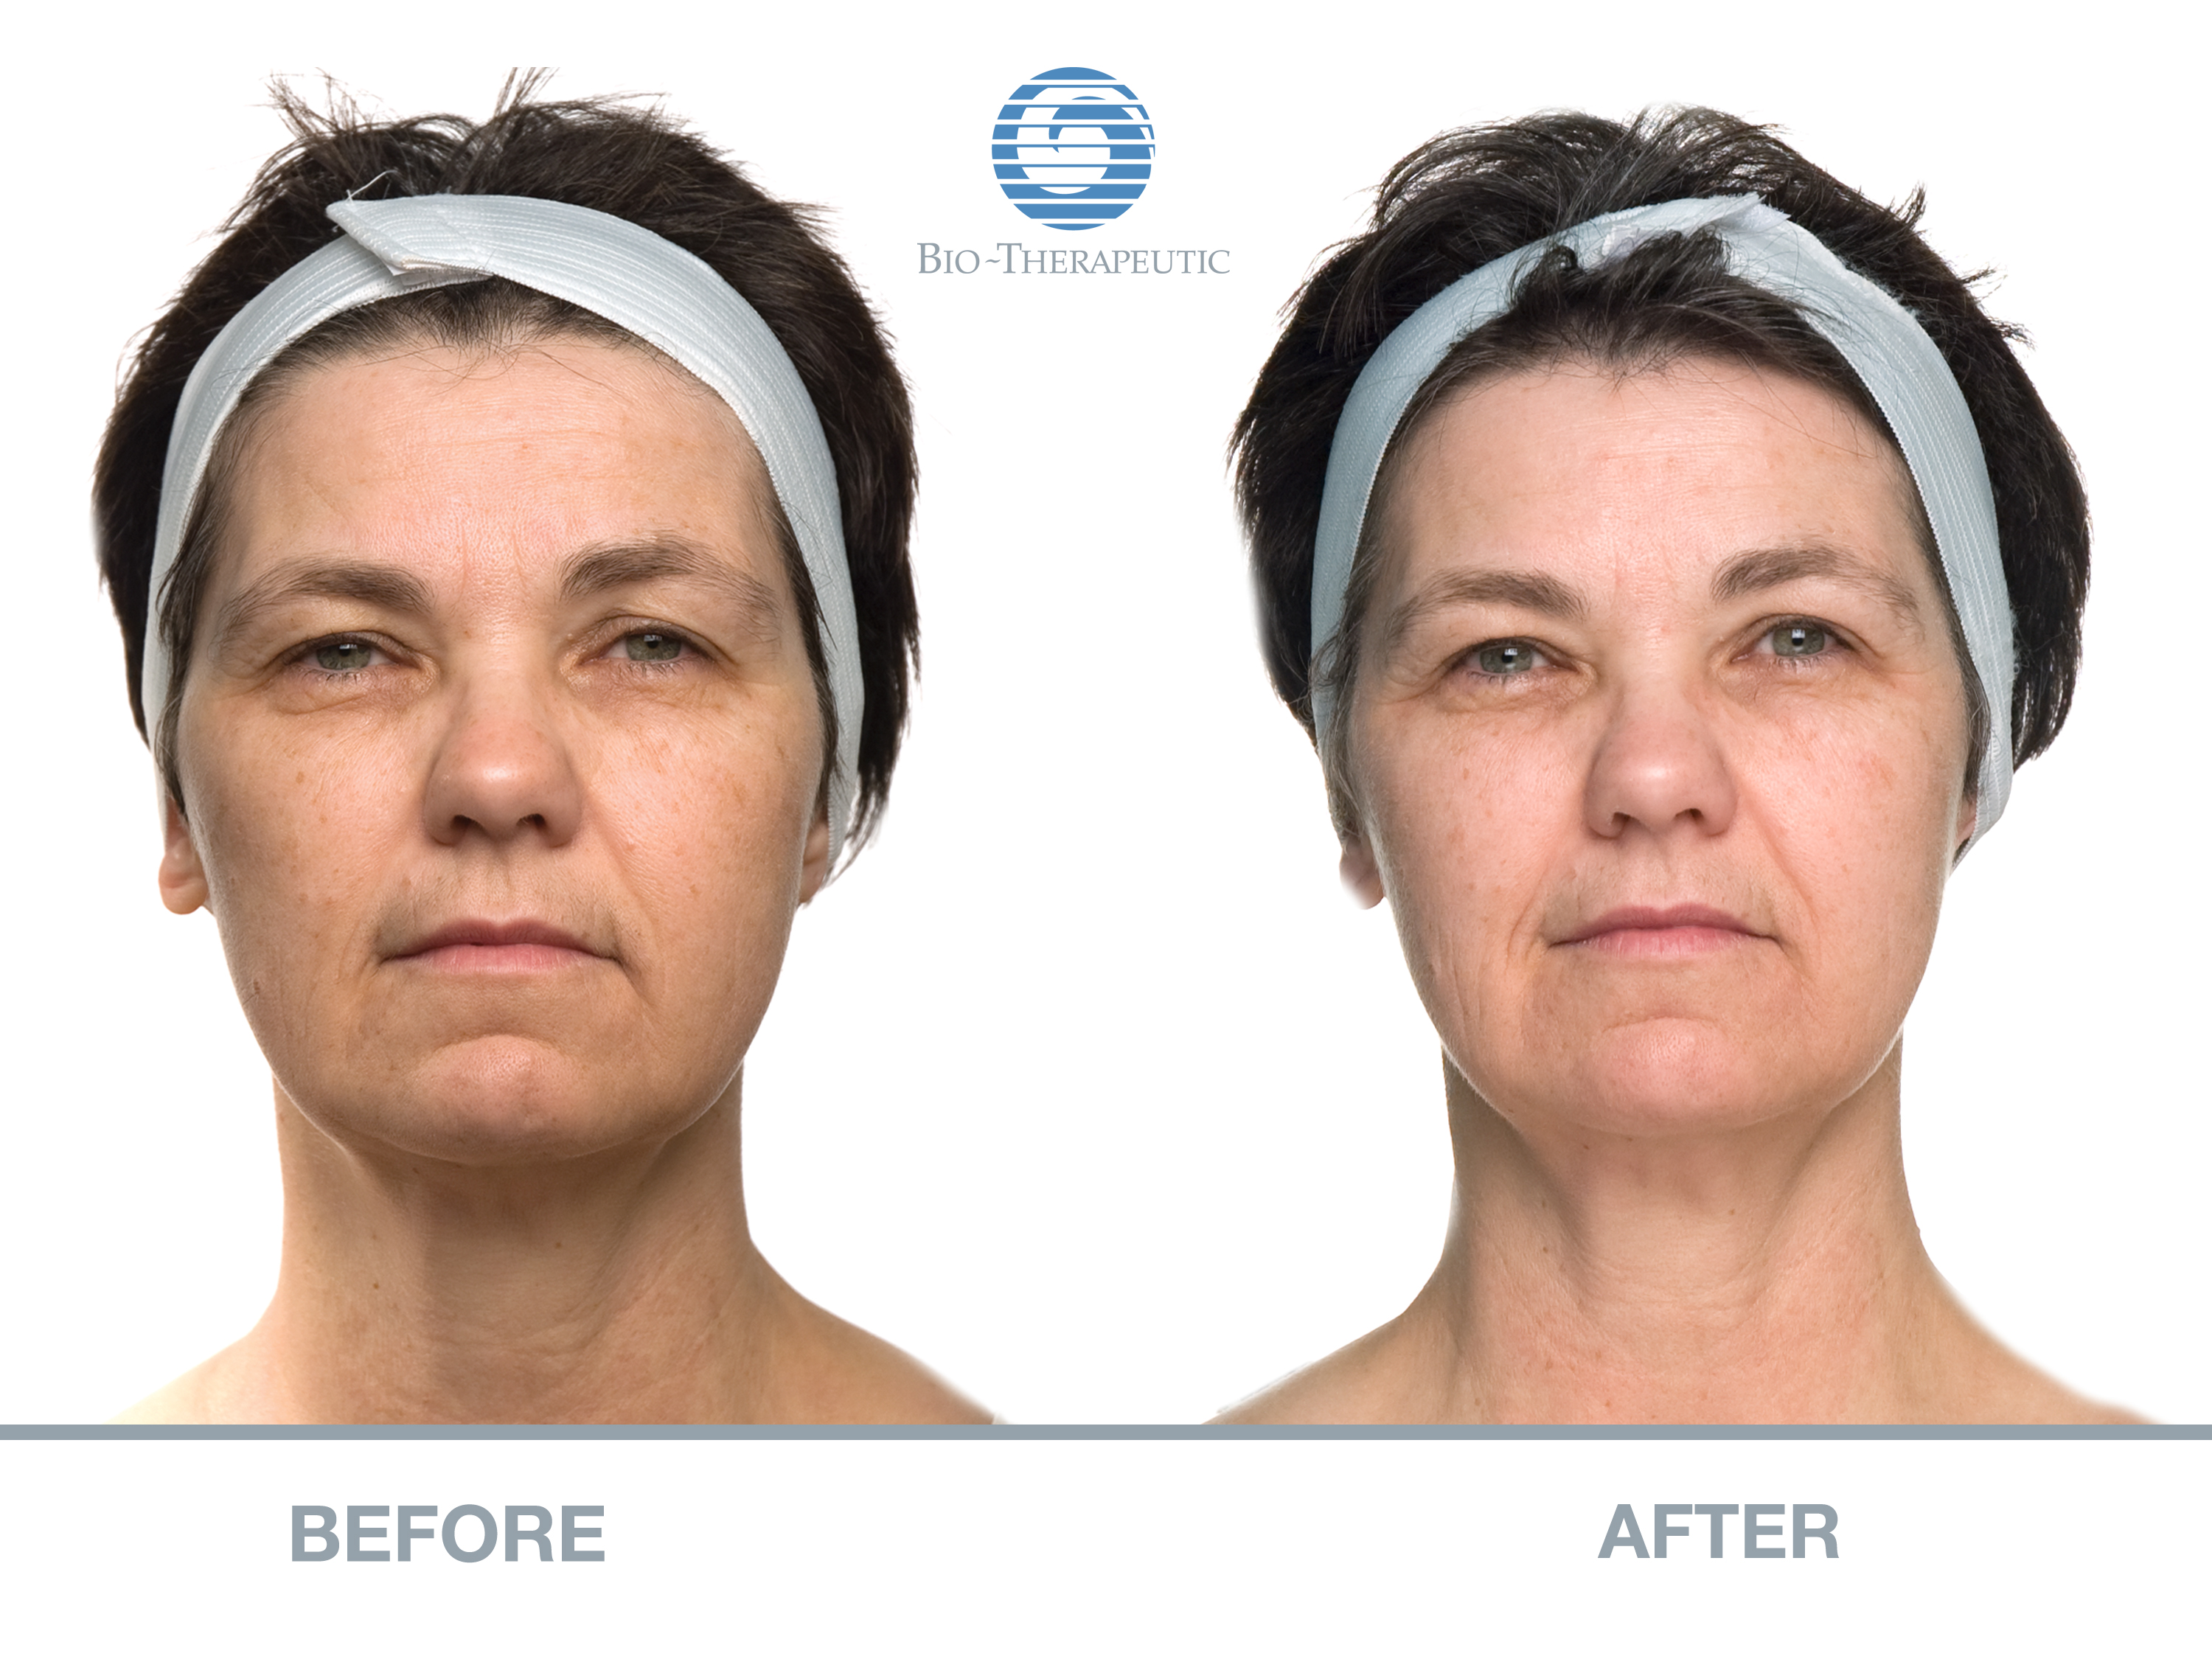 Before and After Bio-Theraputic Facial